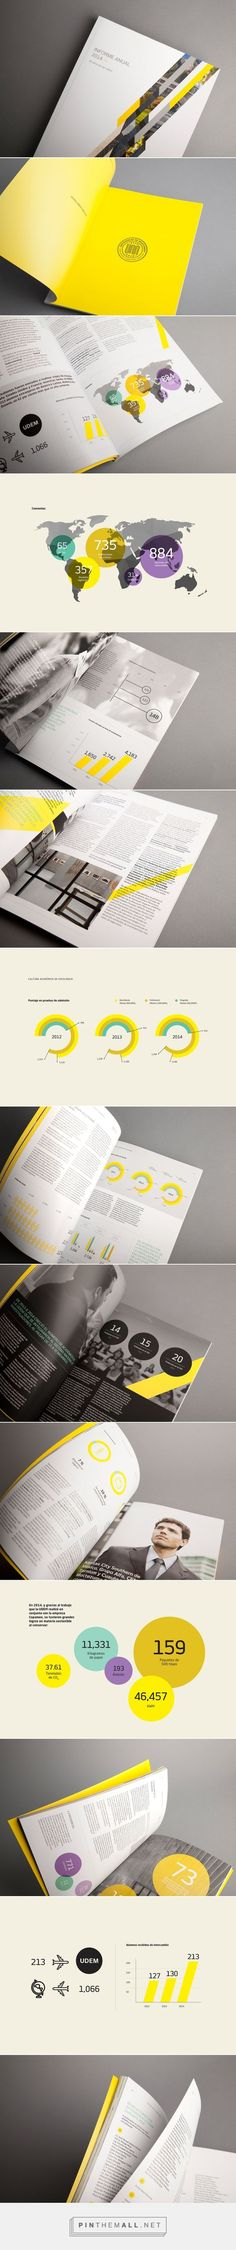 UDEM Anual Report on Behance - created via http://pinthemall.net: